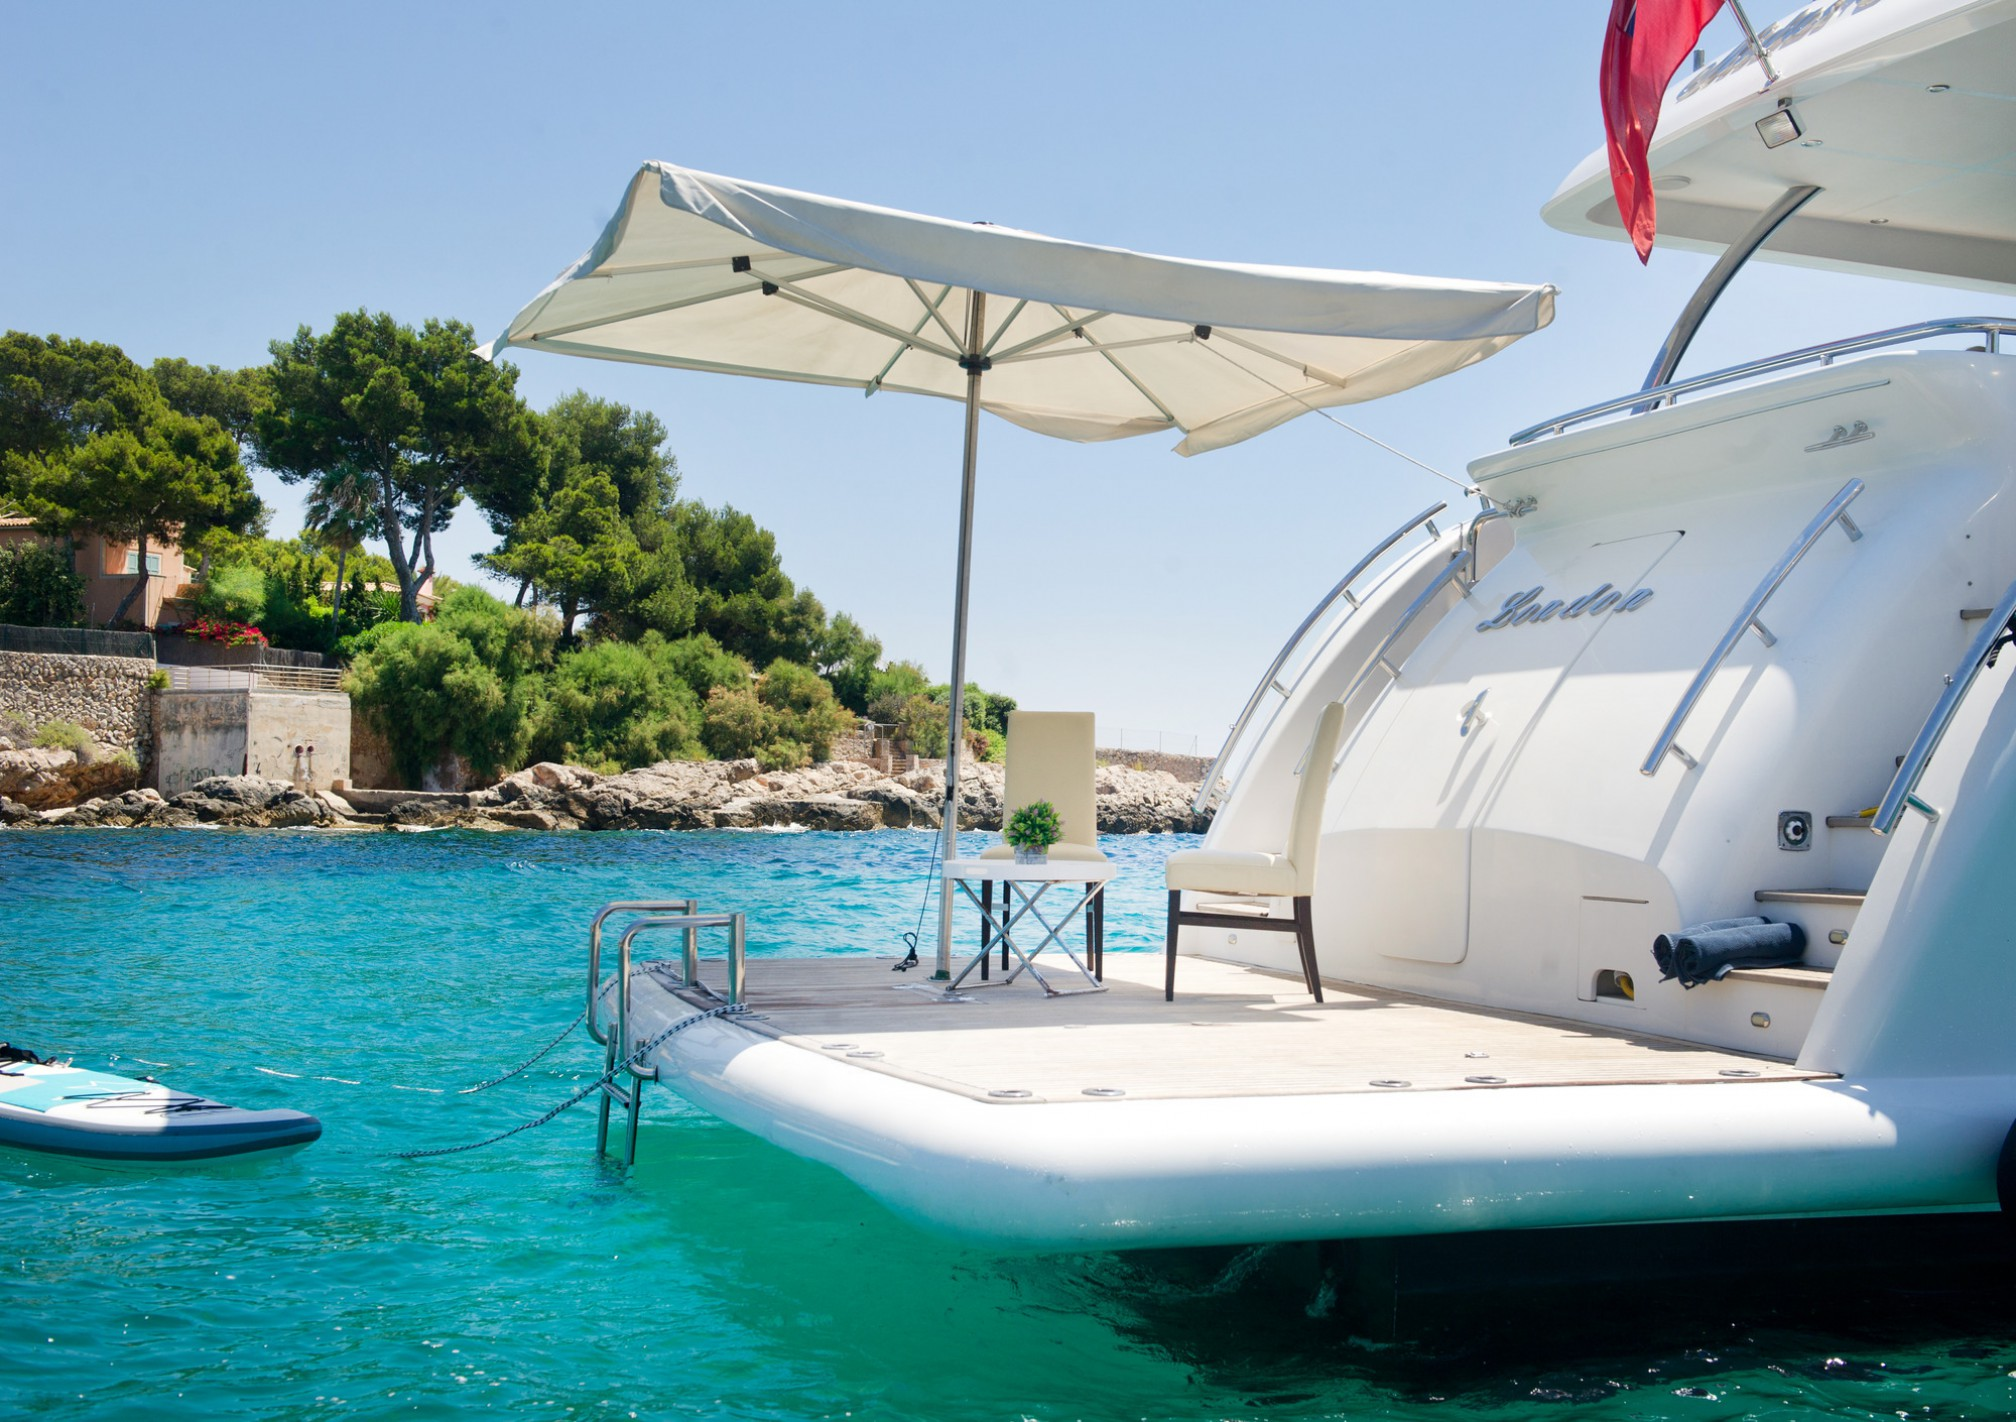 Rental yacht Midas Touch 8 pax outdoors